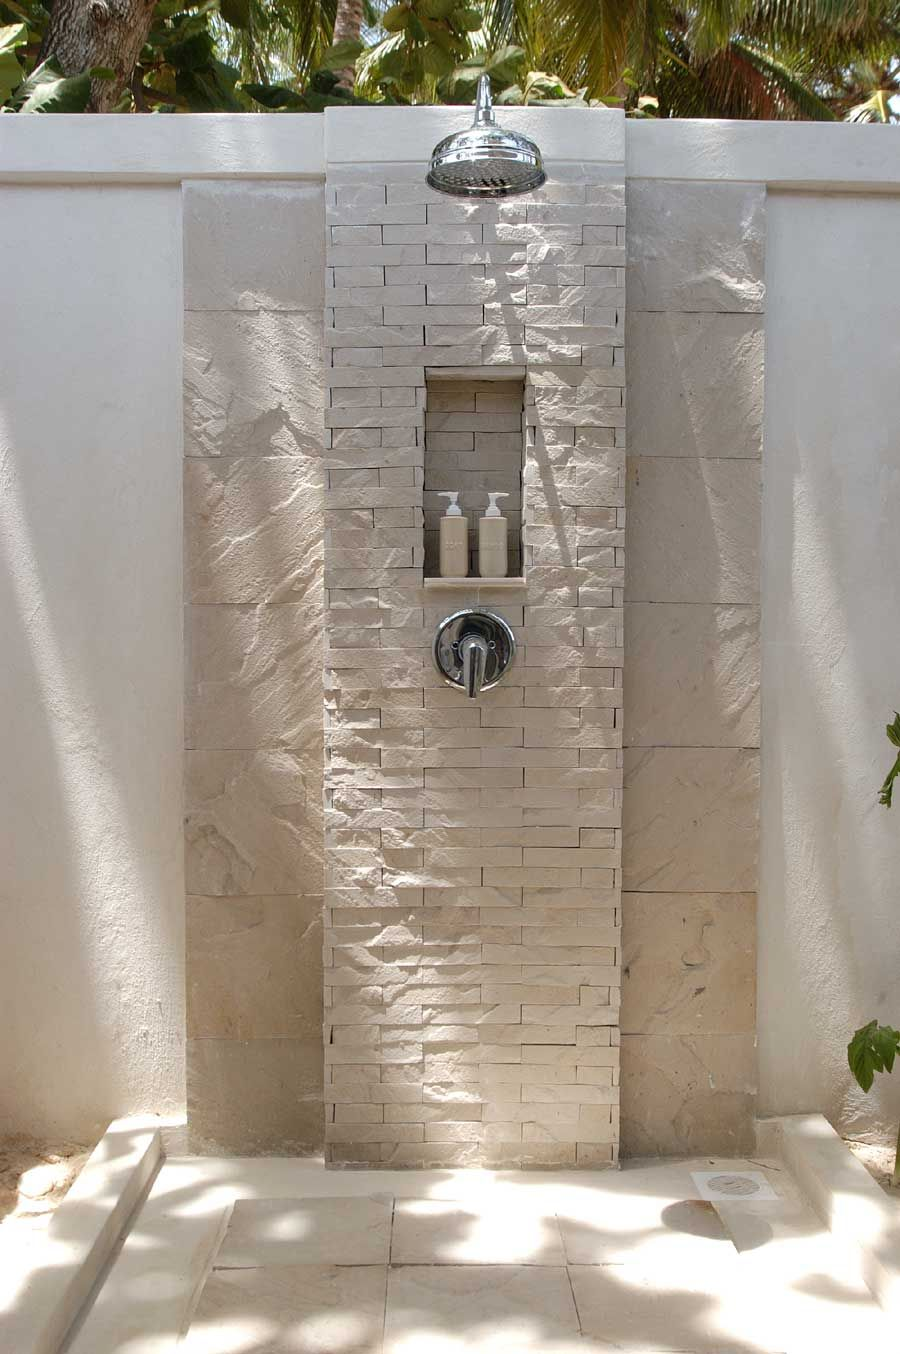 How to make an outdoor shower - Outdoor Showers Can Make You Feel Cool In The Hot Summer